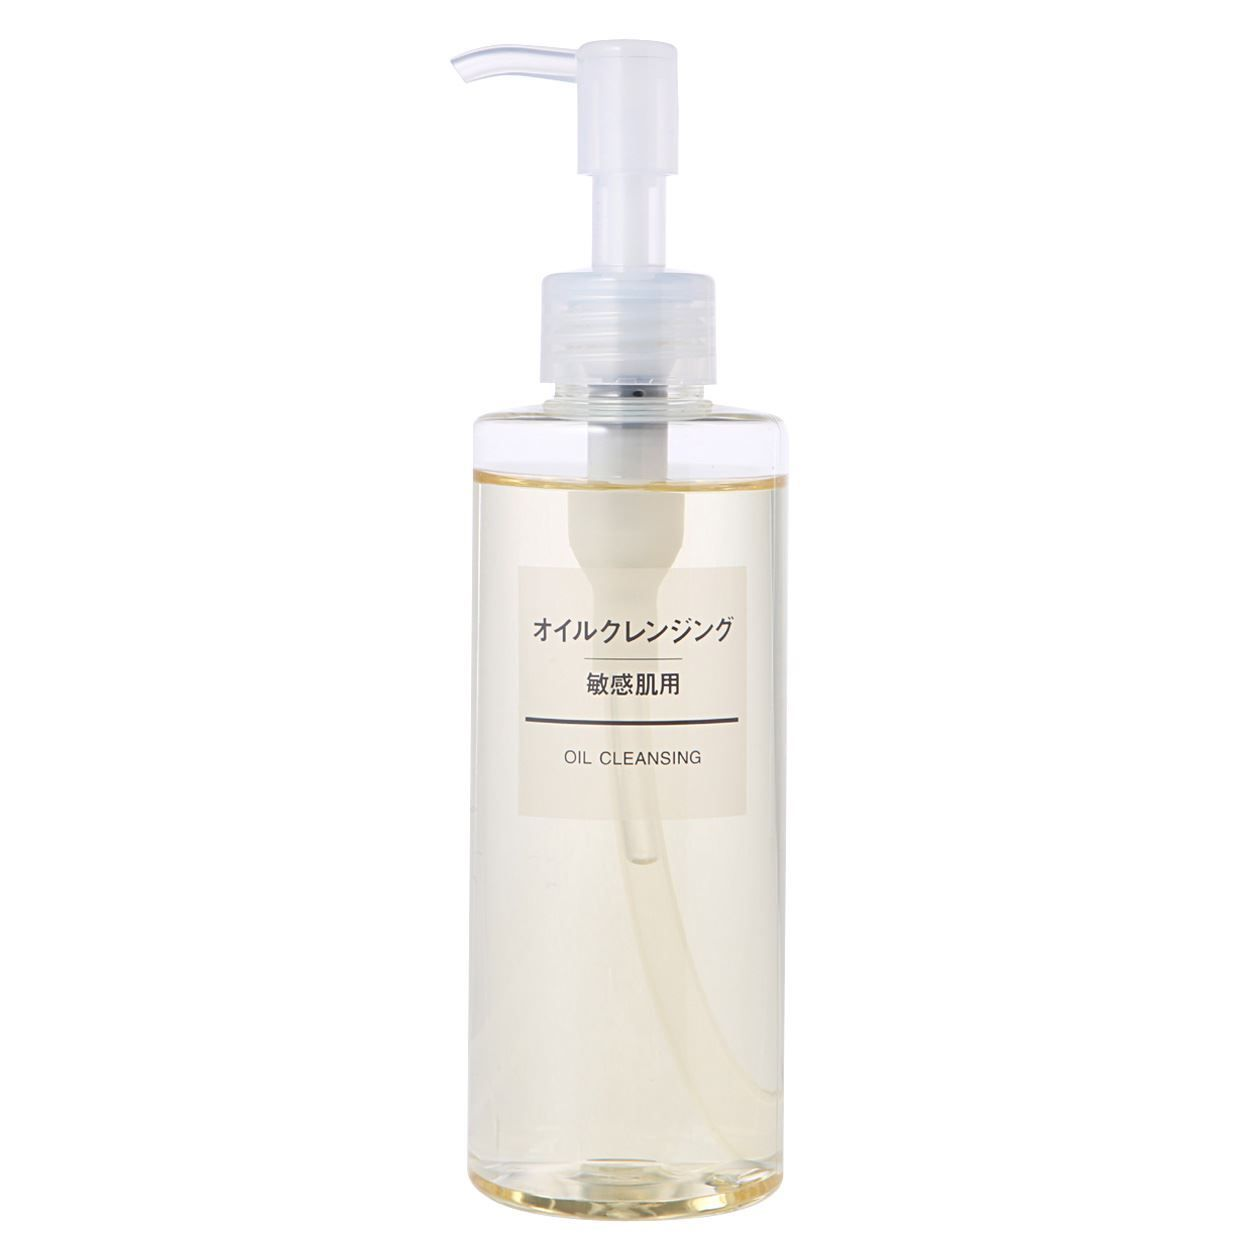 Mild Cleansing Oil